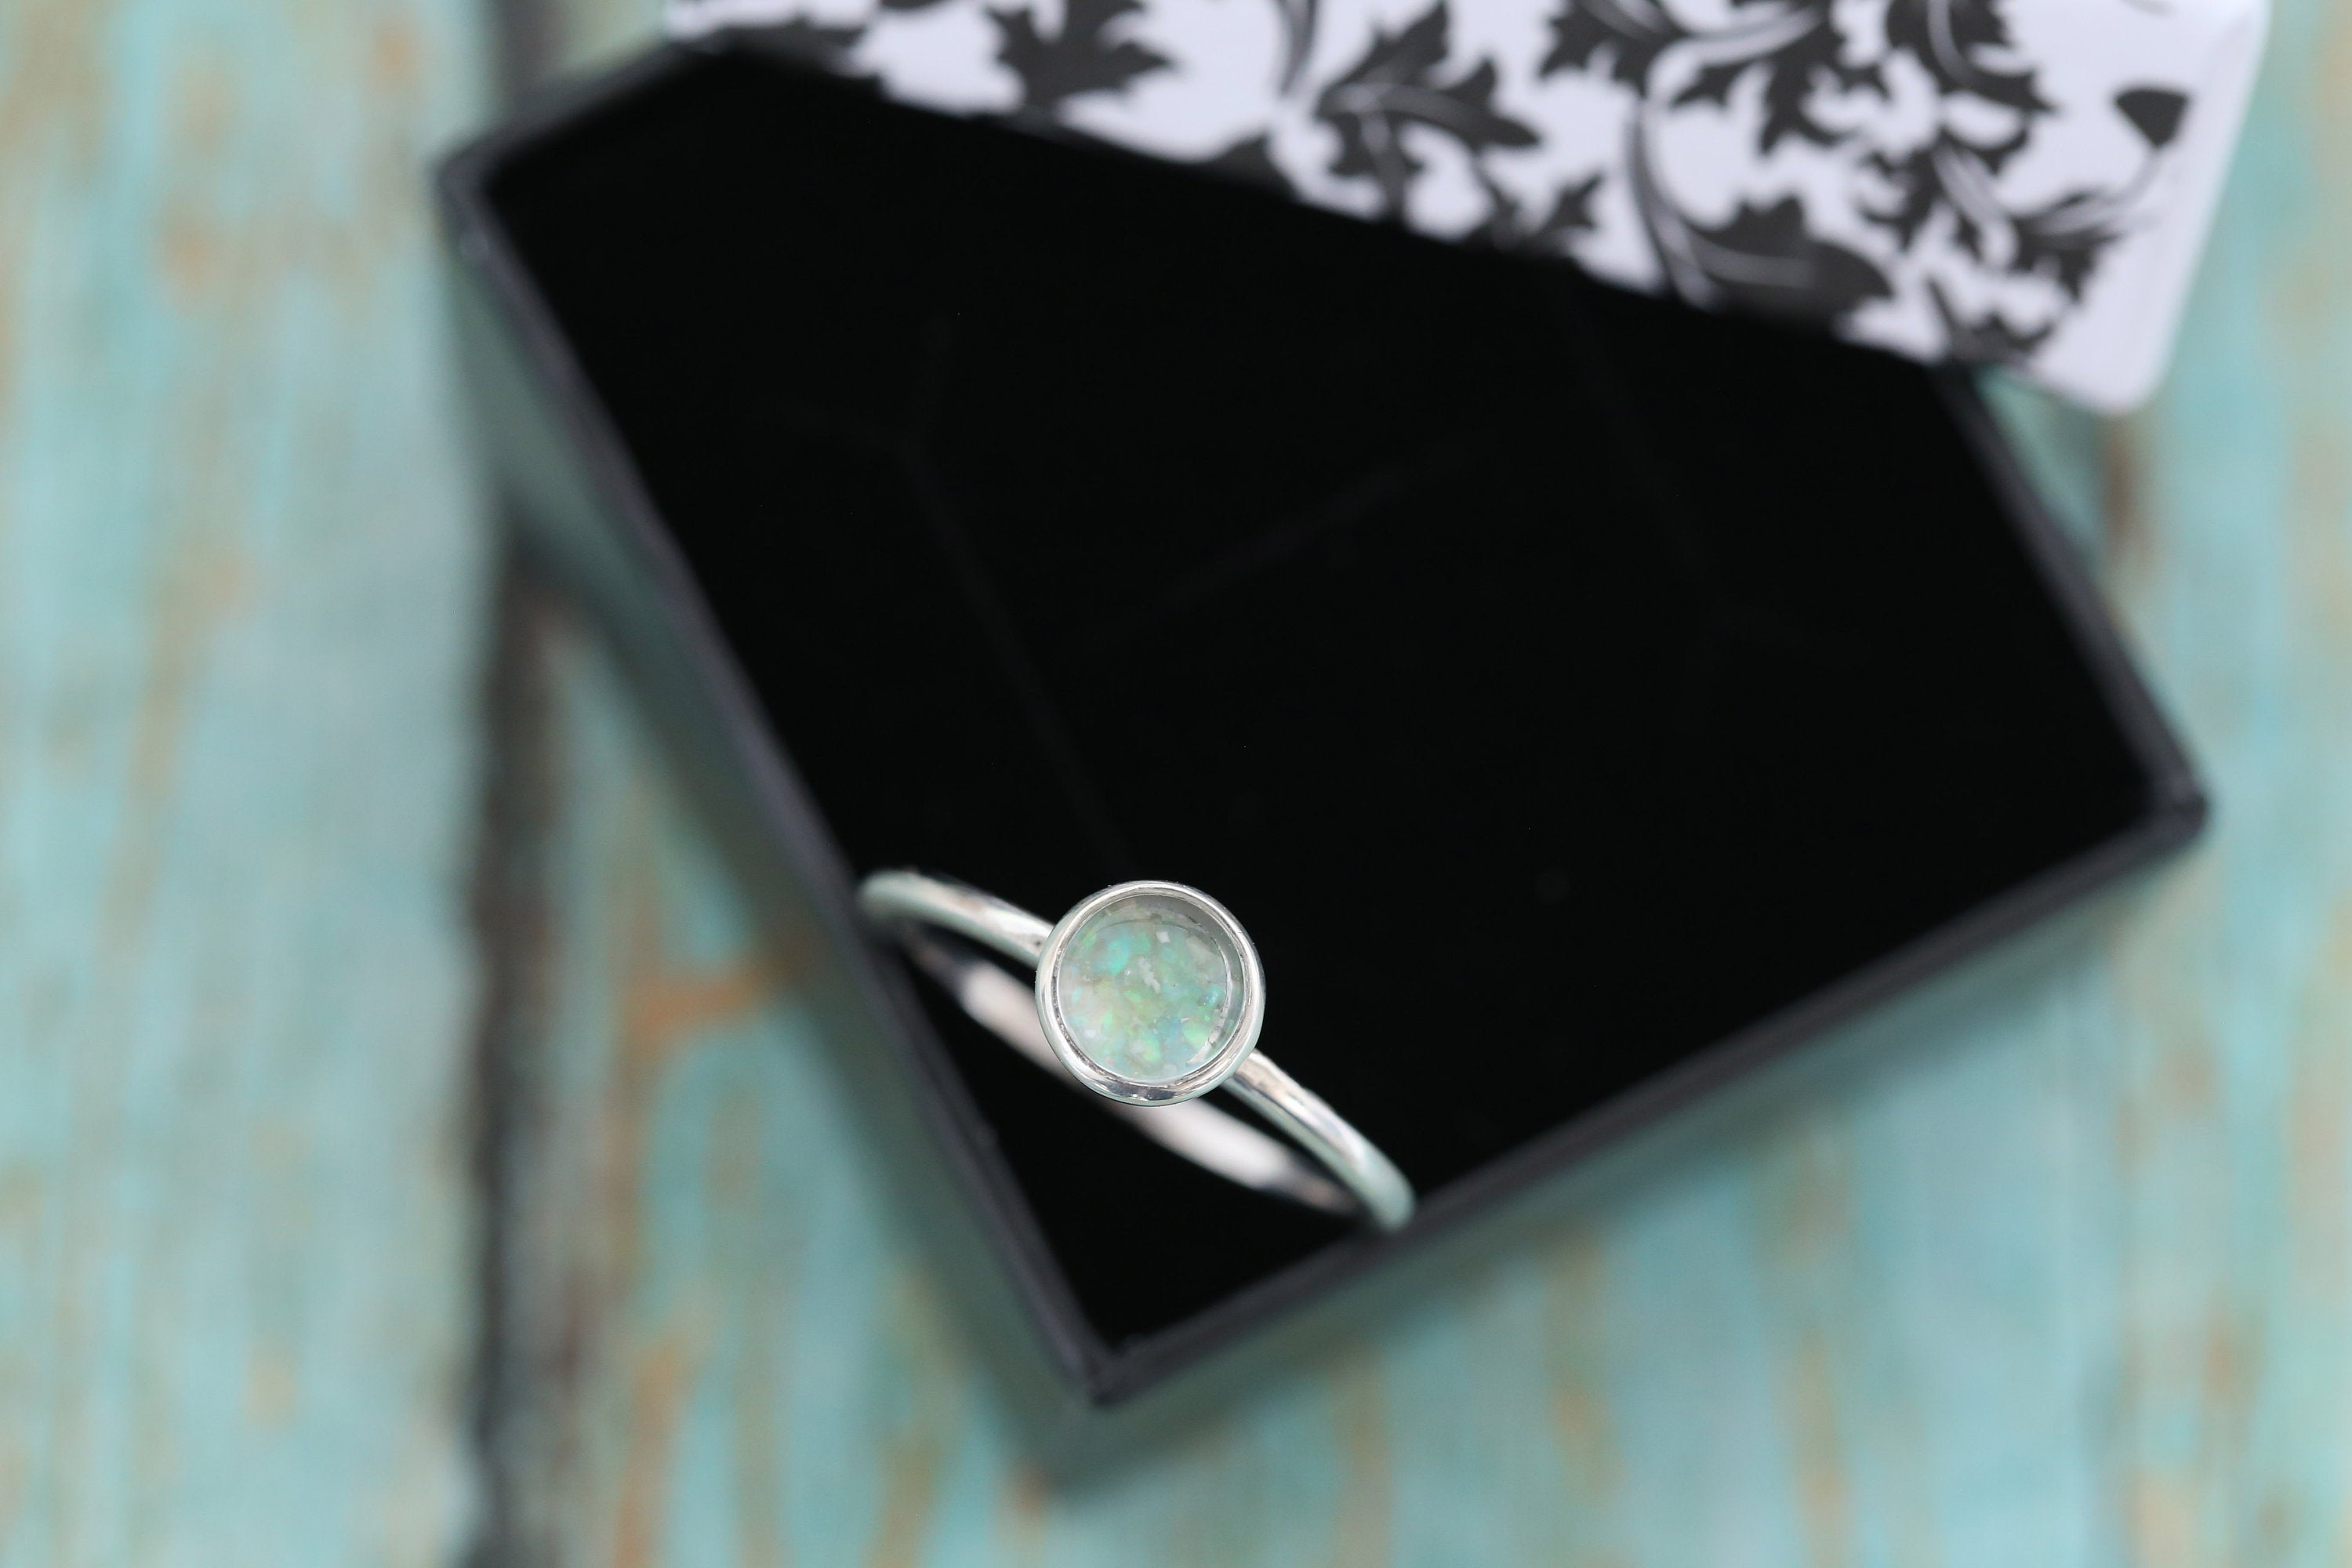 6mm Opal Cremation Ring - Sterling Silver Cremation Ring - Cremation Jewelry - Ash Ring - Ash Jewelry - Urn Ring - Pet Loss - Opal Ring